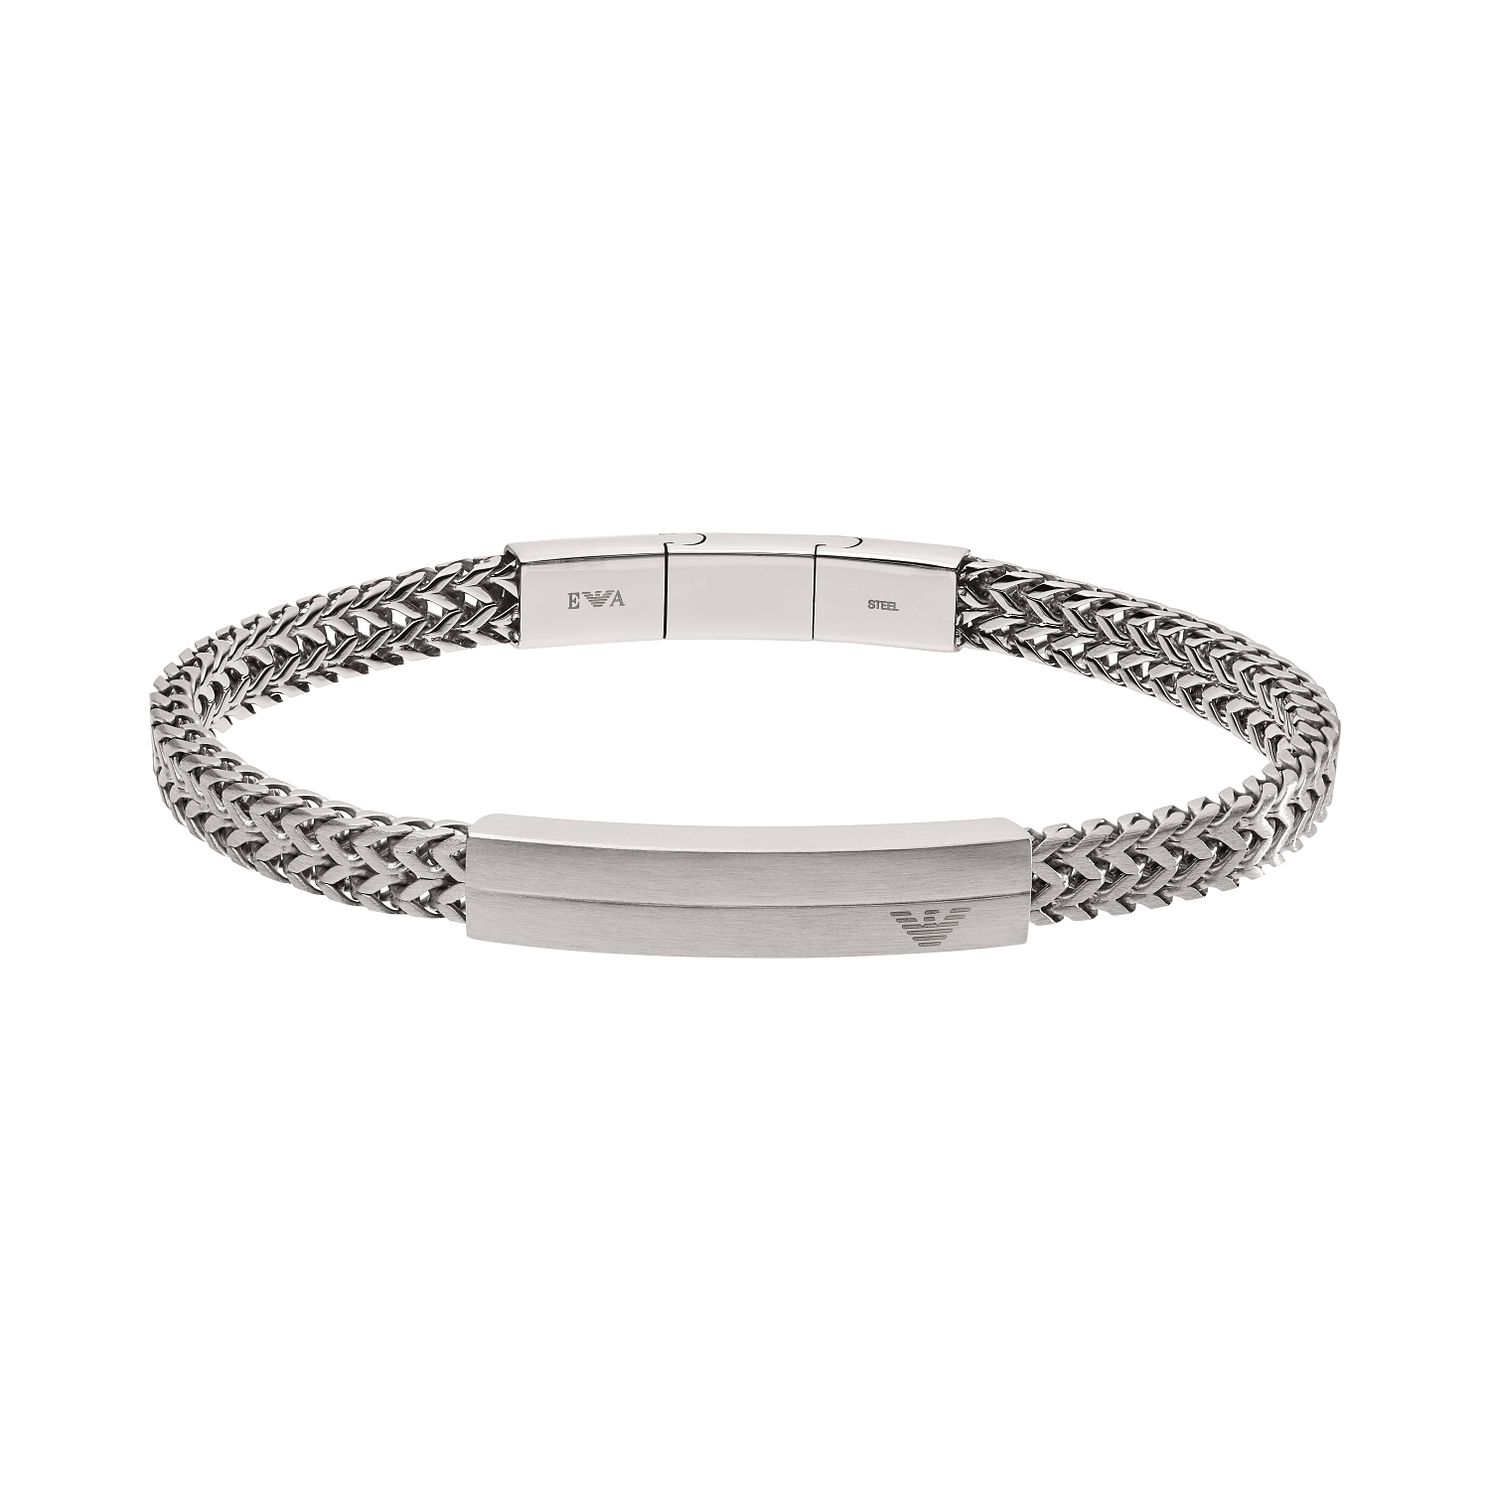 Emporio Armani Men's Stainless Steel Bracelet - Product number 3485951